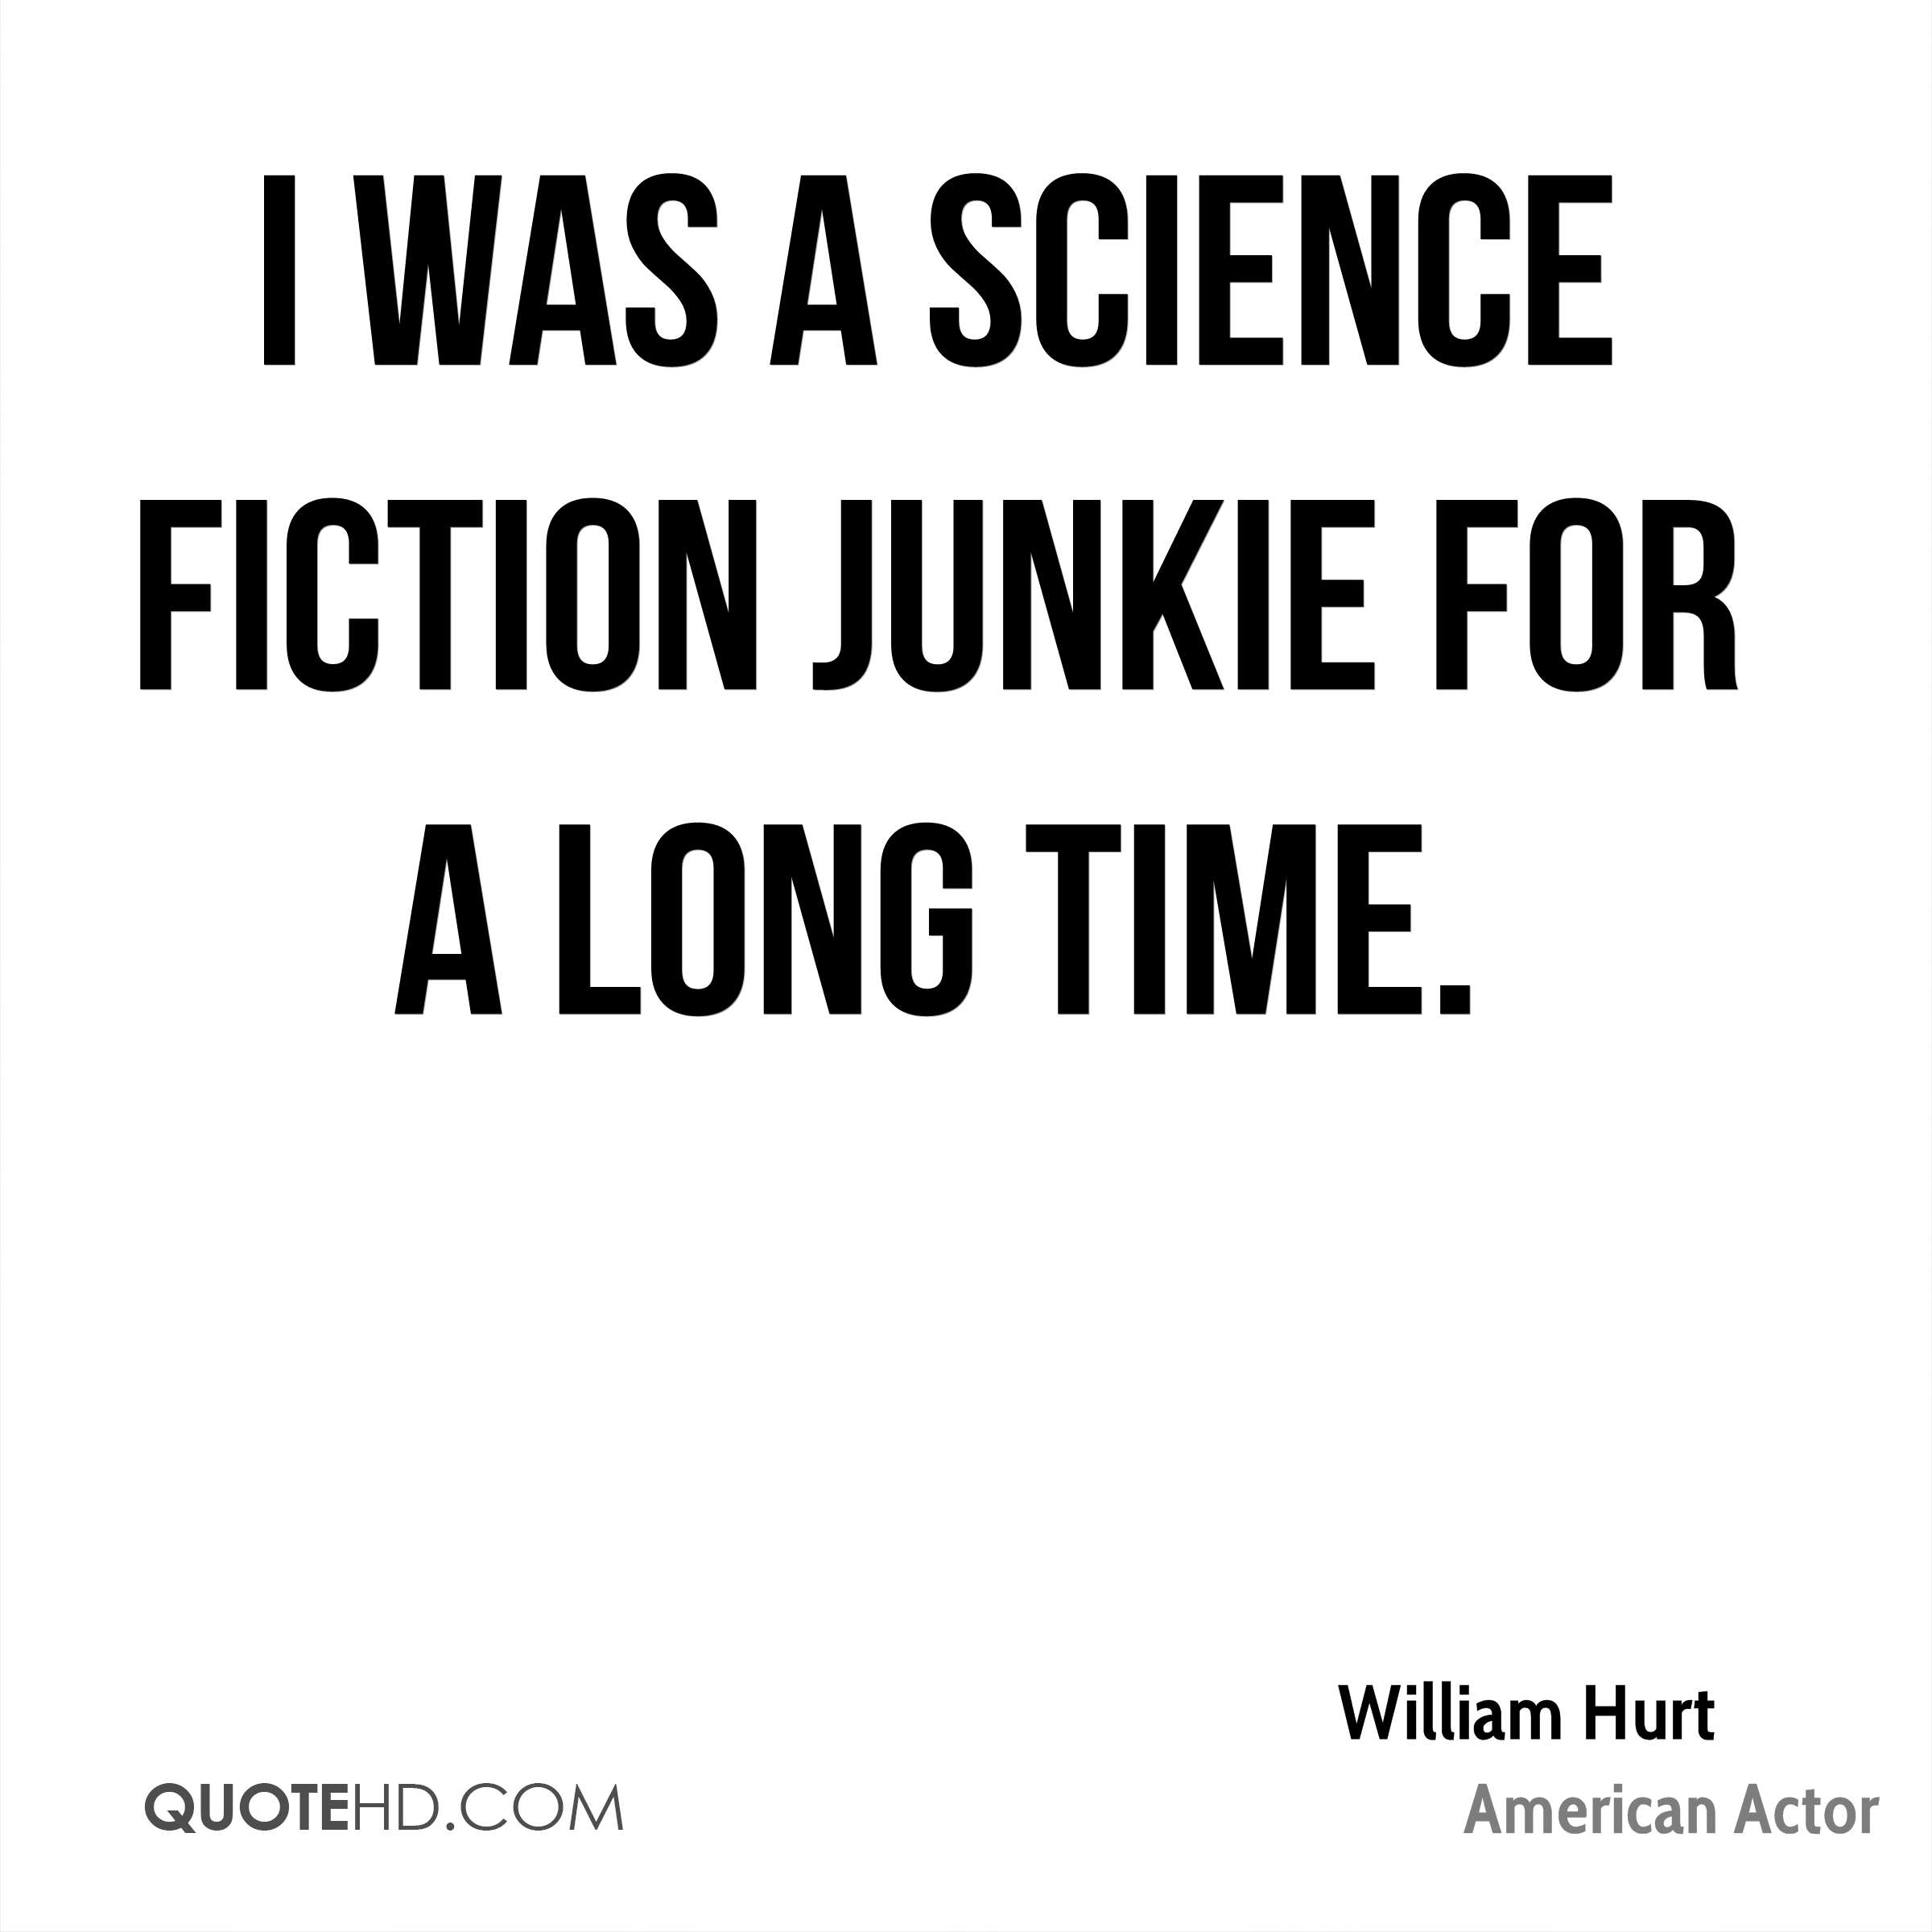 I was a science fiction junkie for a long time.